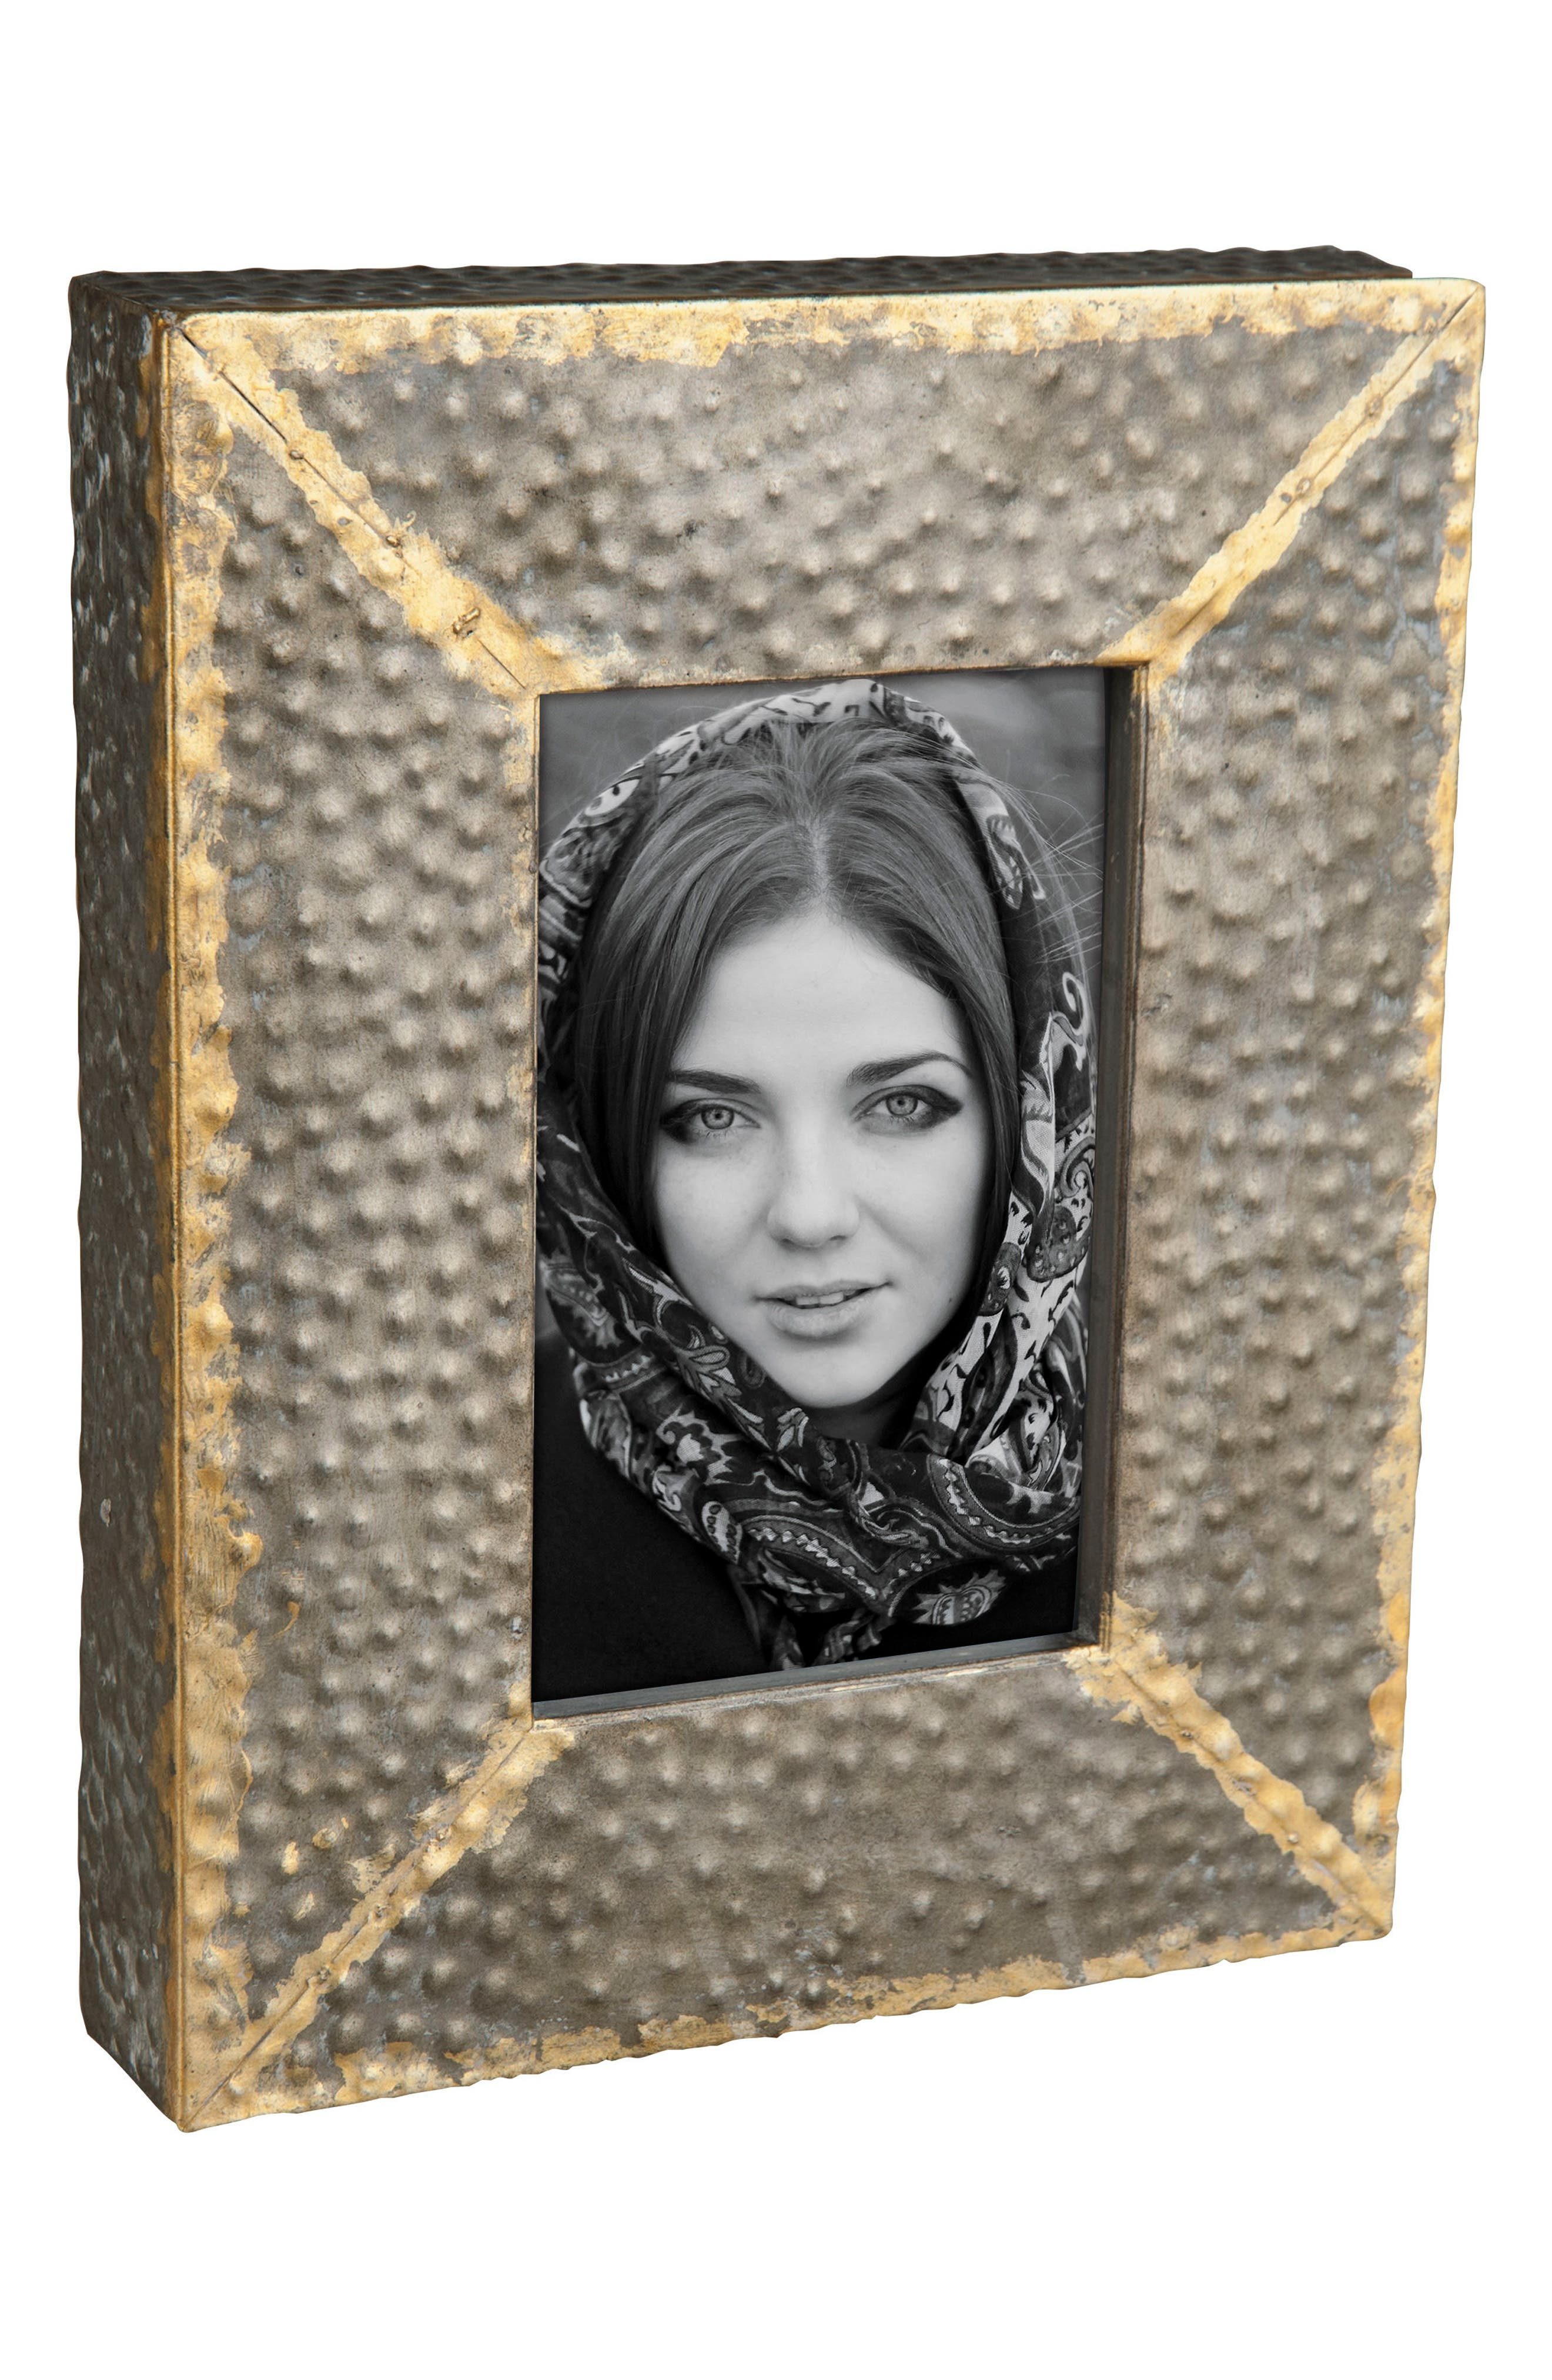 Hammered Metal Picture Frame,                             Main thumbnail 1, color,                             Metal/ Glass